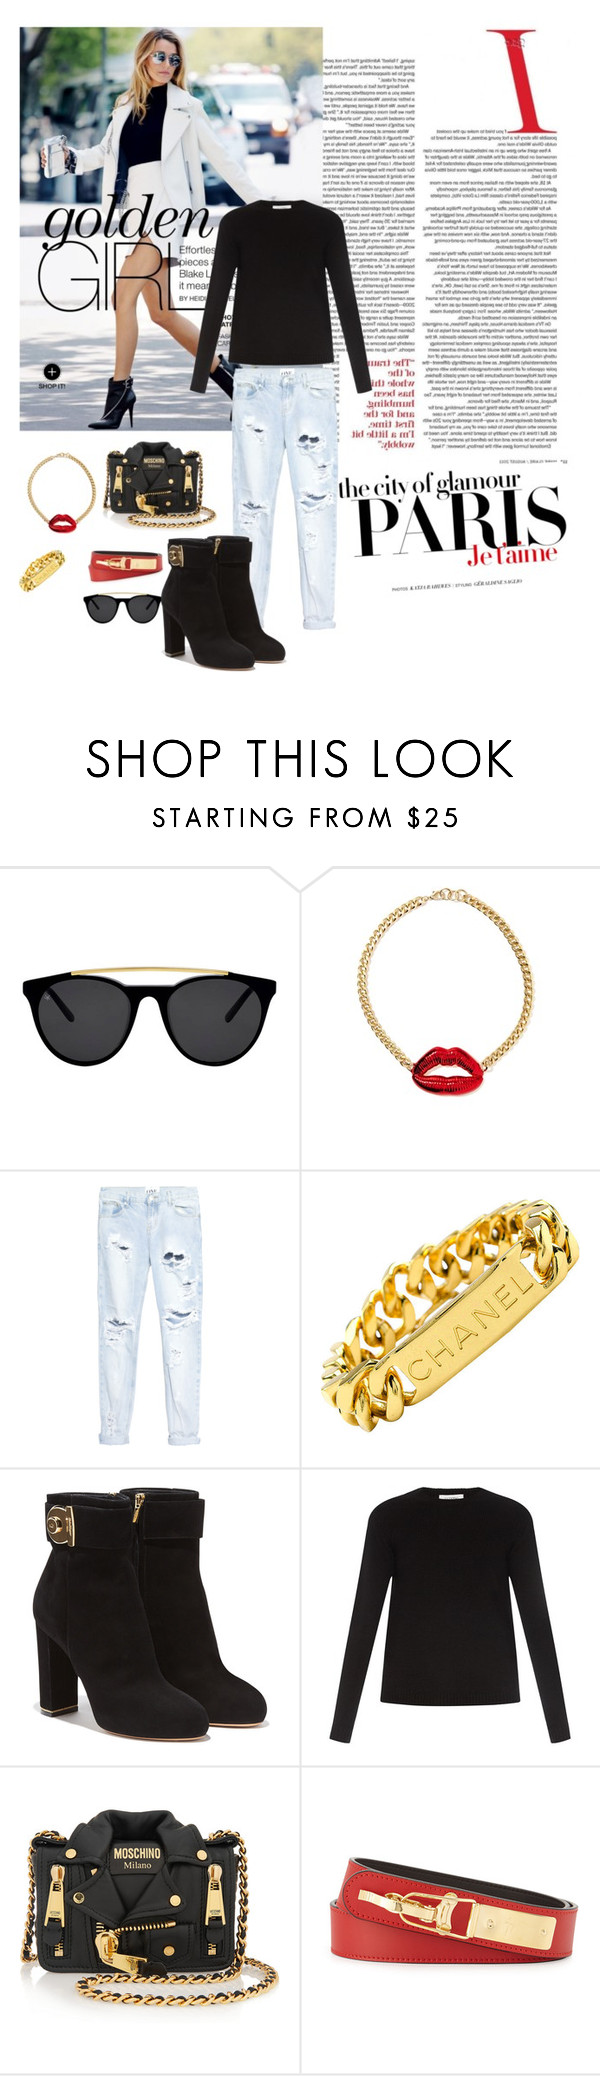 """""""#A"""" by deame ❤ liked on Polyvore featuring H&M, Smoke & Mirrors, One Teaspoon, Chanel, Salvatore Ferragamo, Valentino, Moschino, Giuseppe Zanotti, women's clothing and women's fashion"""